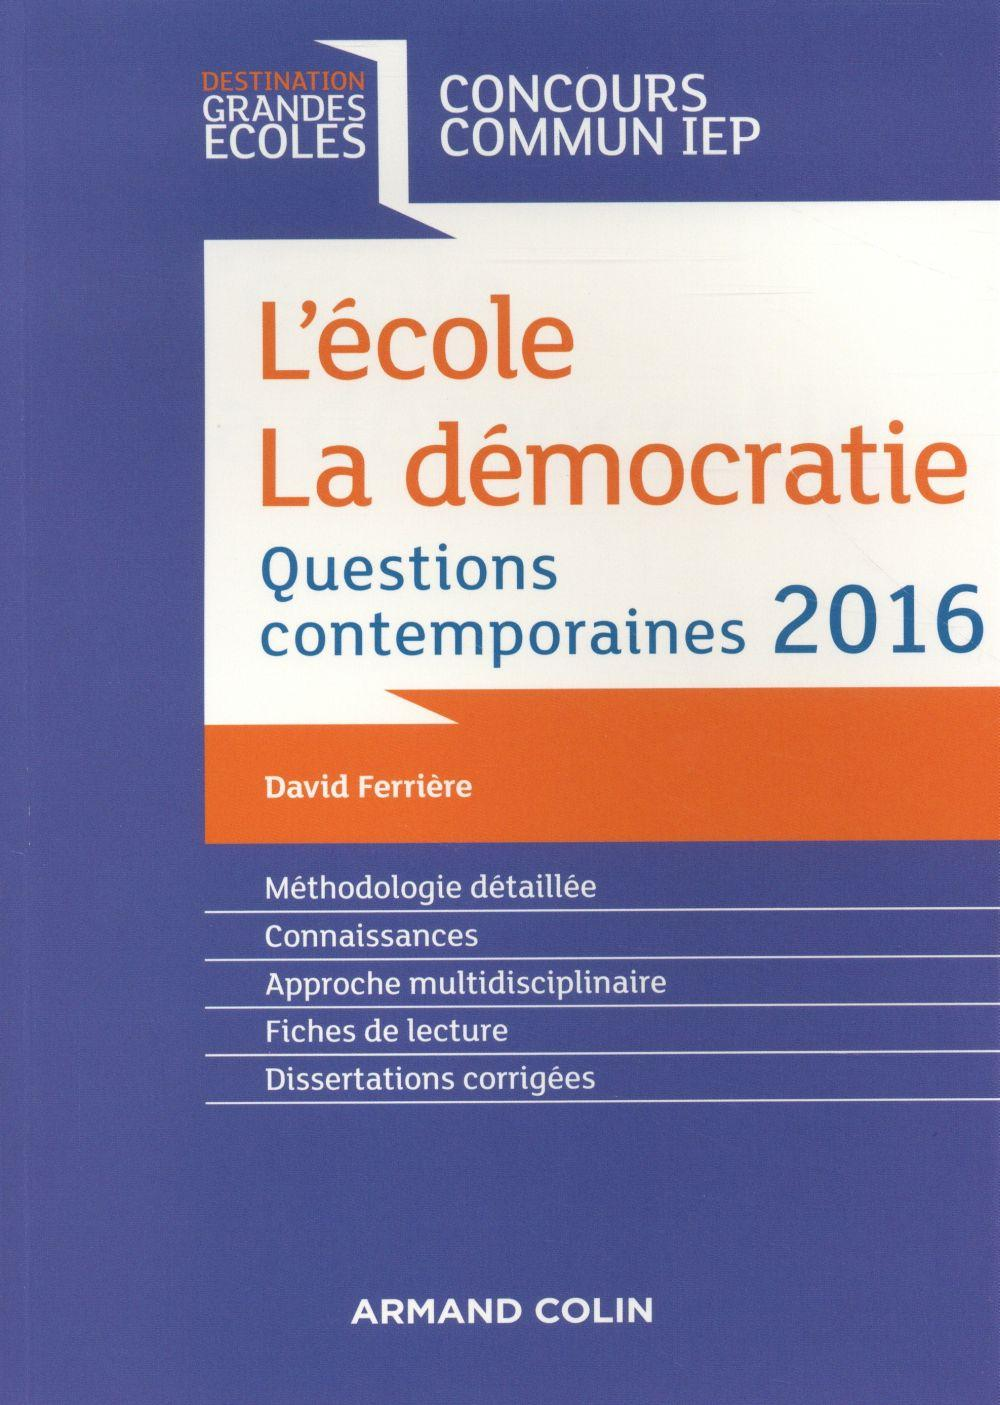 Questions contemporaines ; concours commun IEP (édition 2016)  - David Ferriere